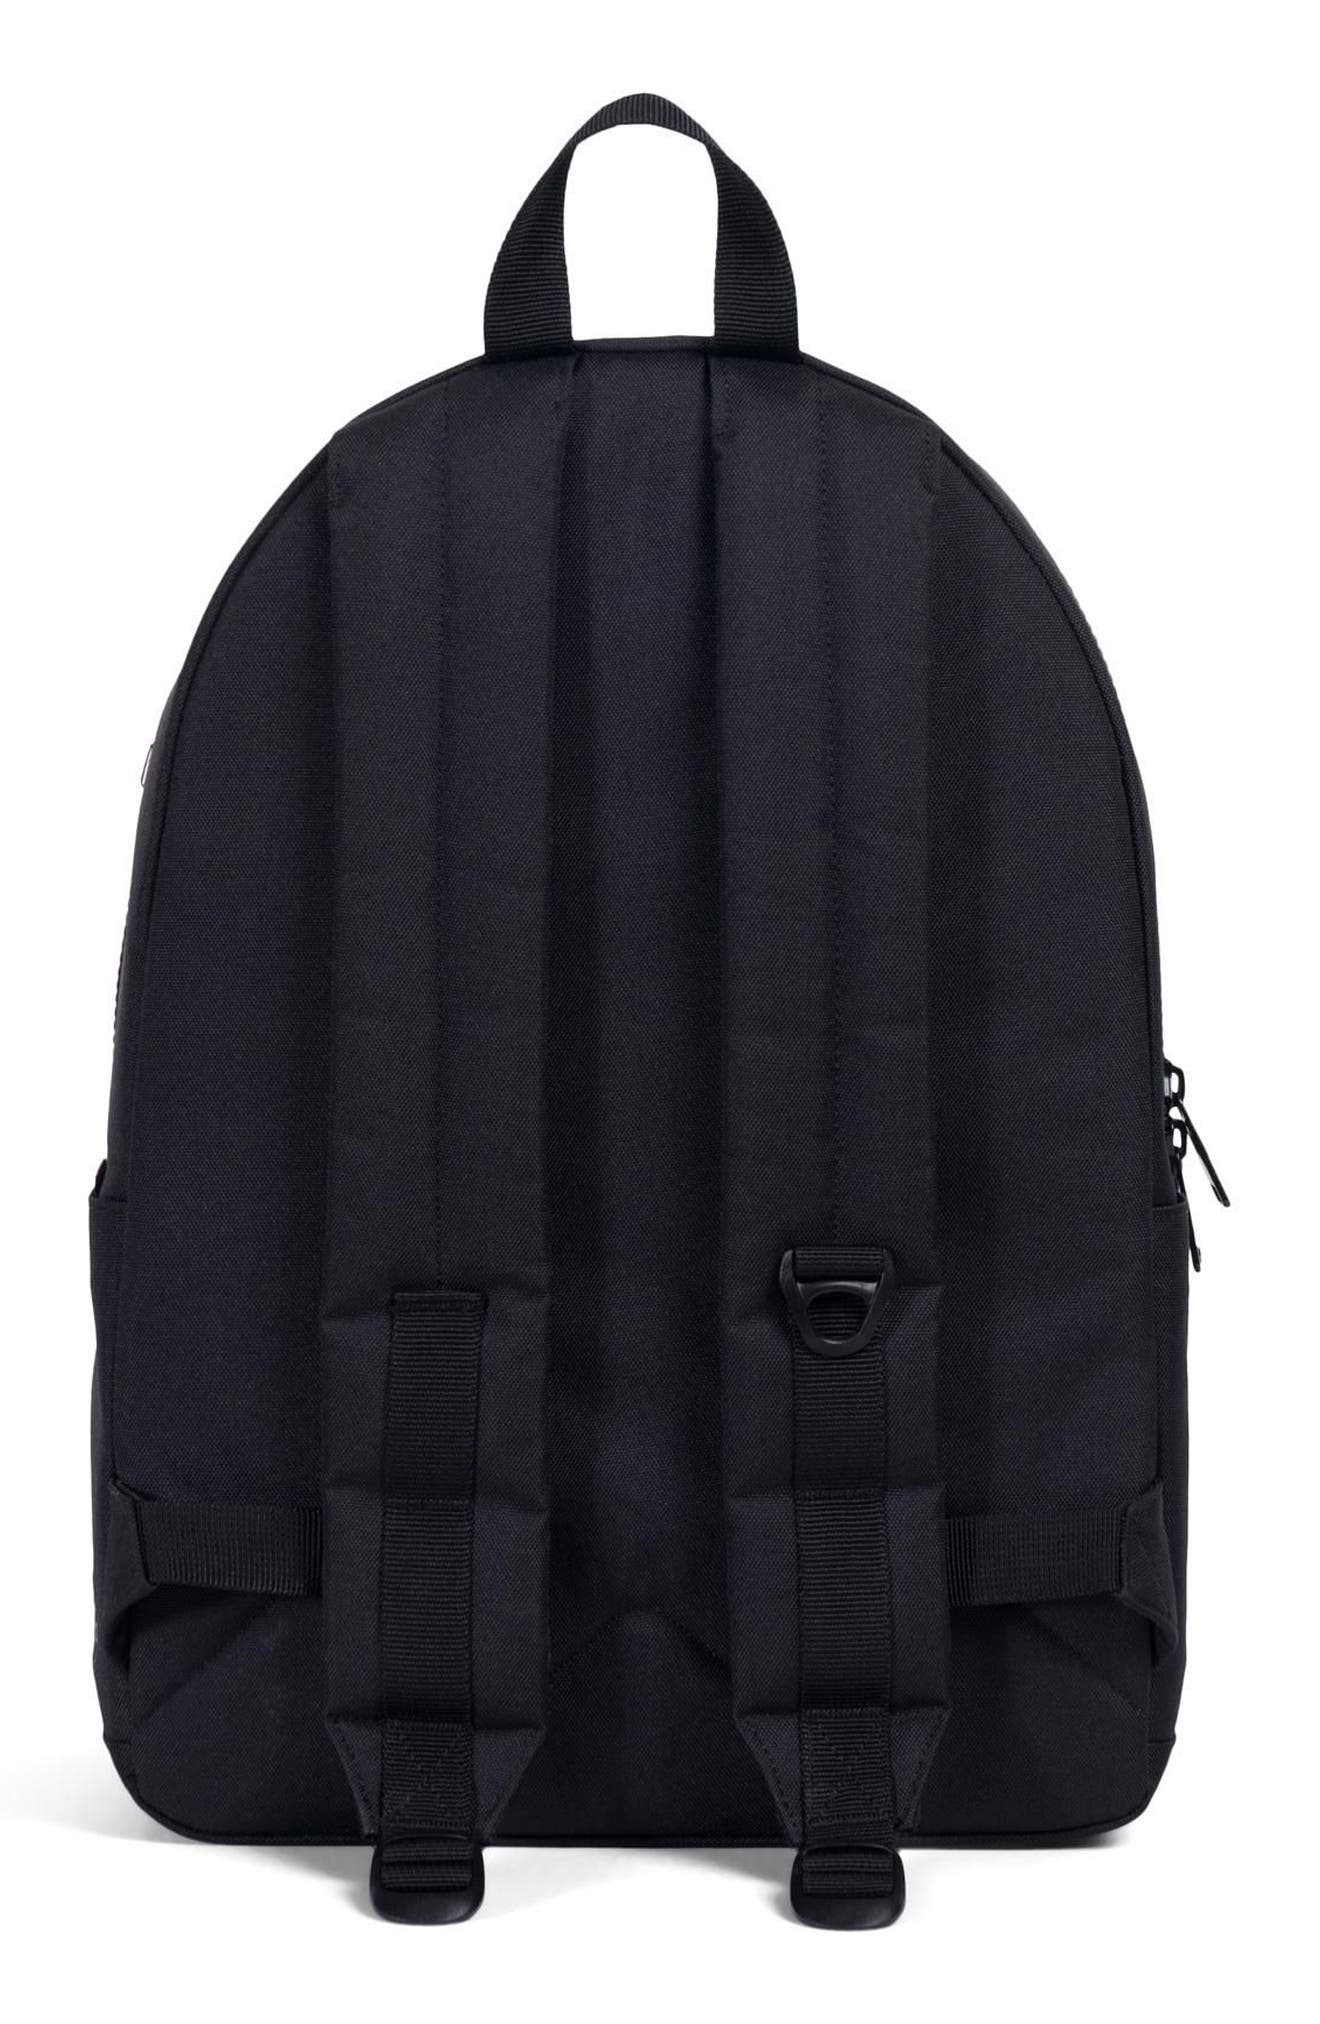 HERSCHEL SUPPLY CO.,                             Studio Winlaw XL Backpack,                             Alternate thumbnail 2, color,                             001